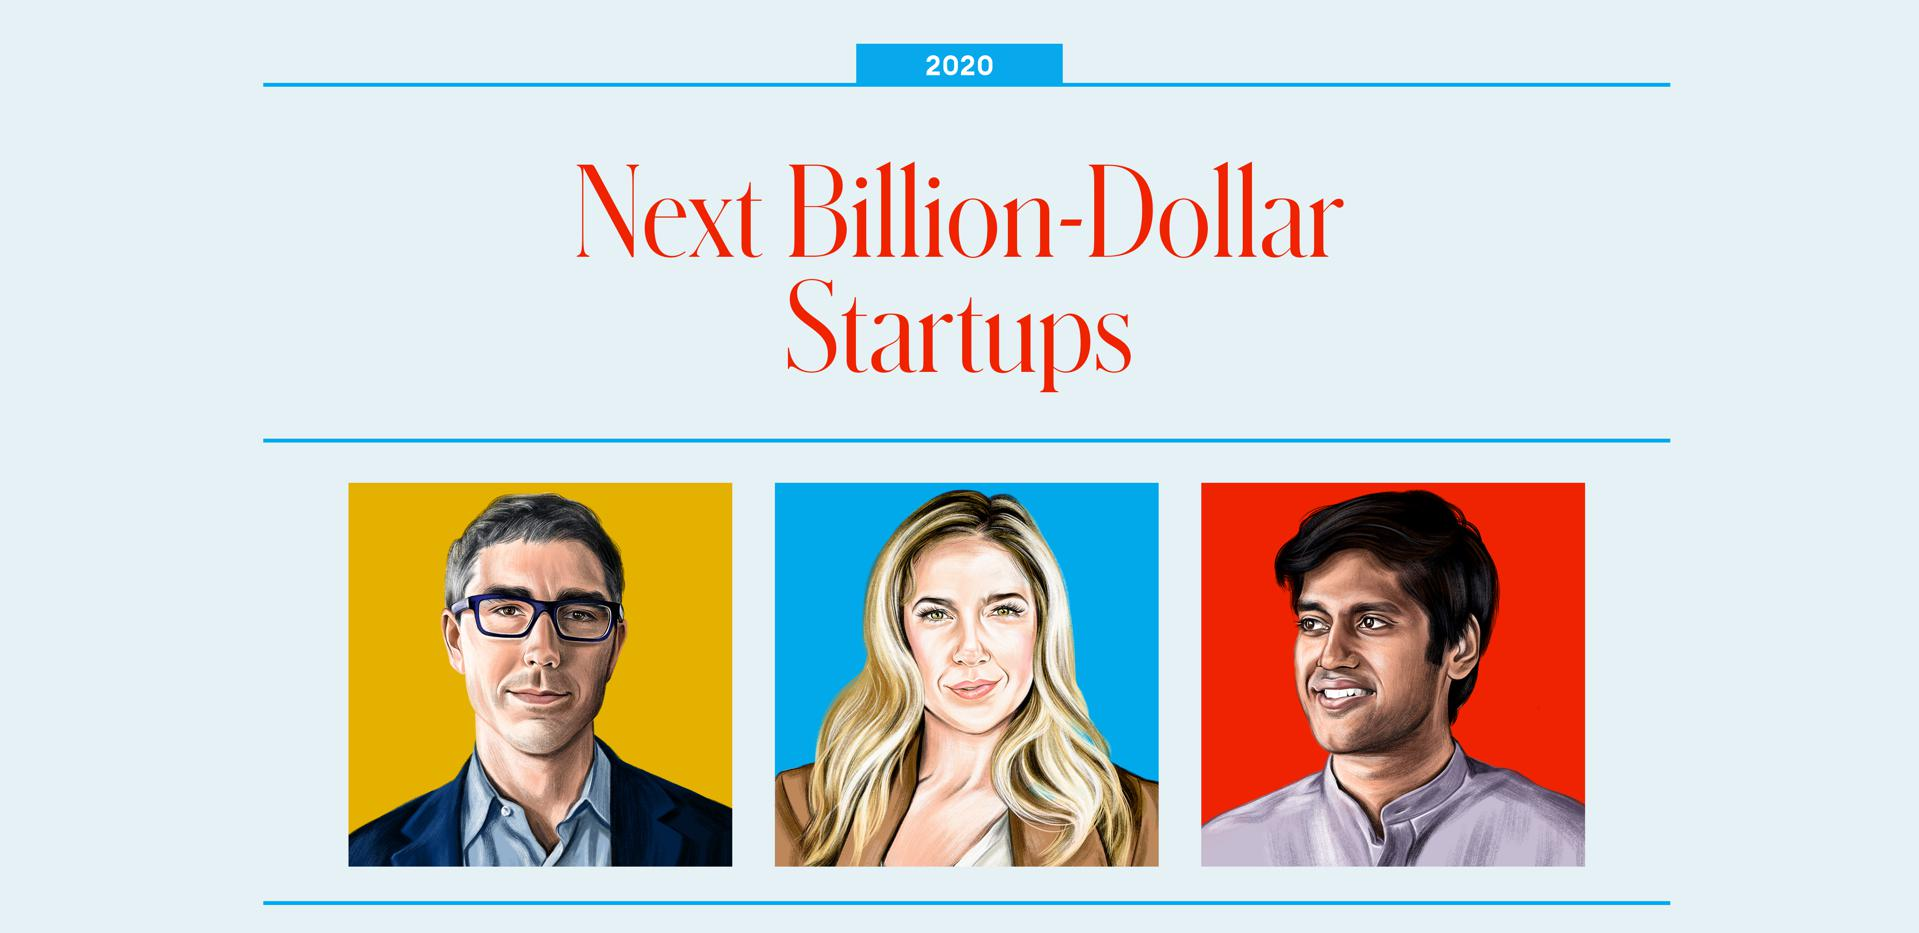 A New Wave Of Disruptors Joins The Next Billion-Dollar Startups List